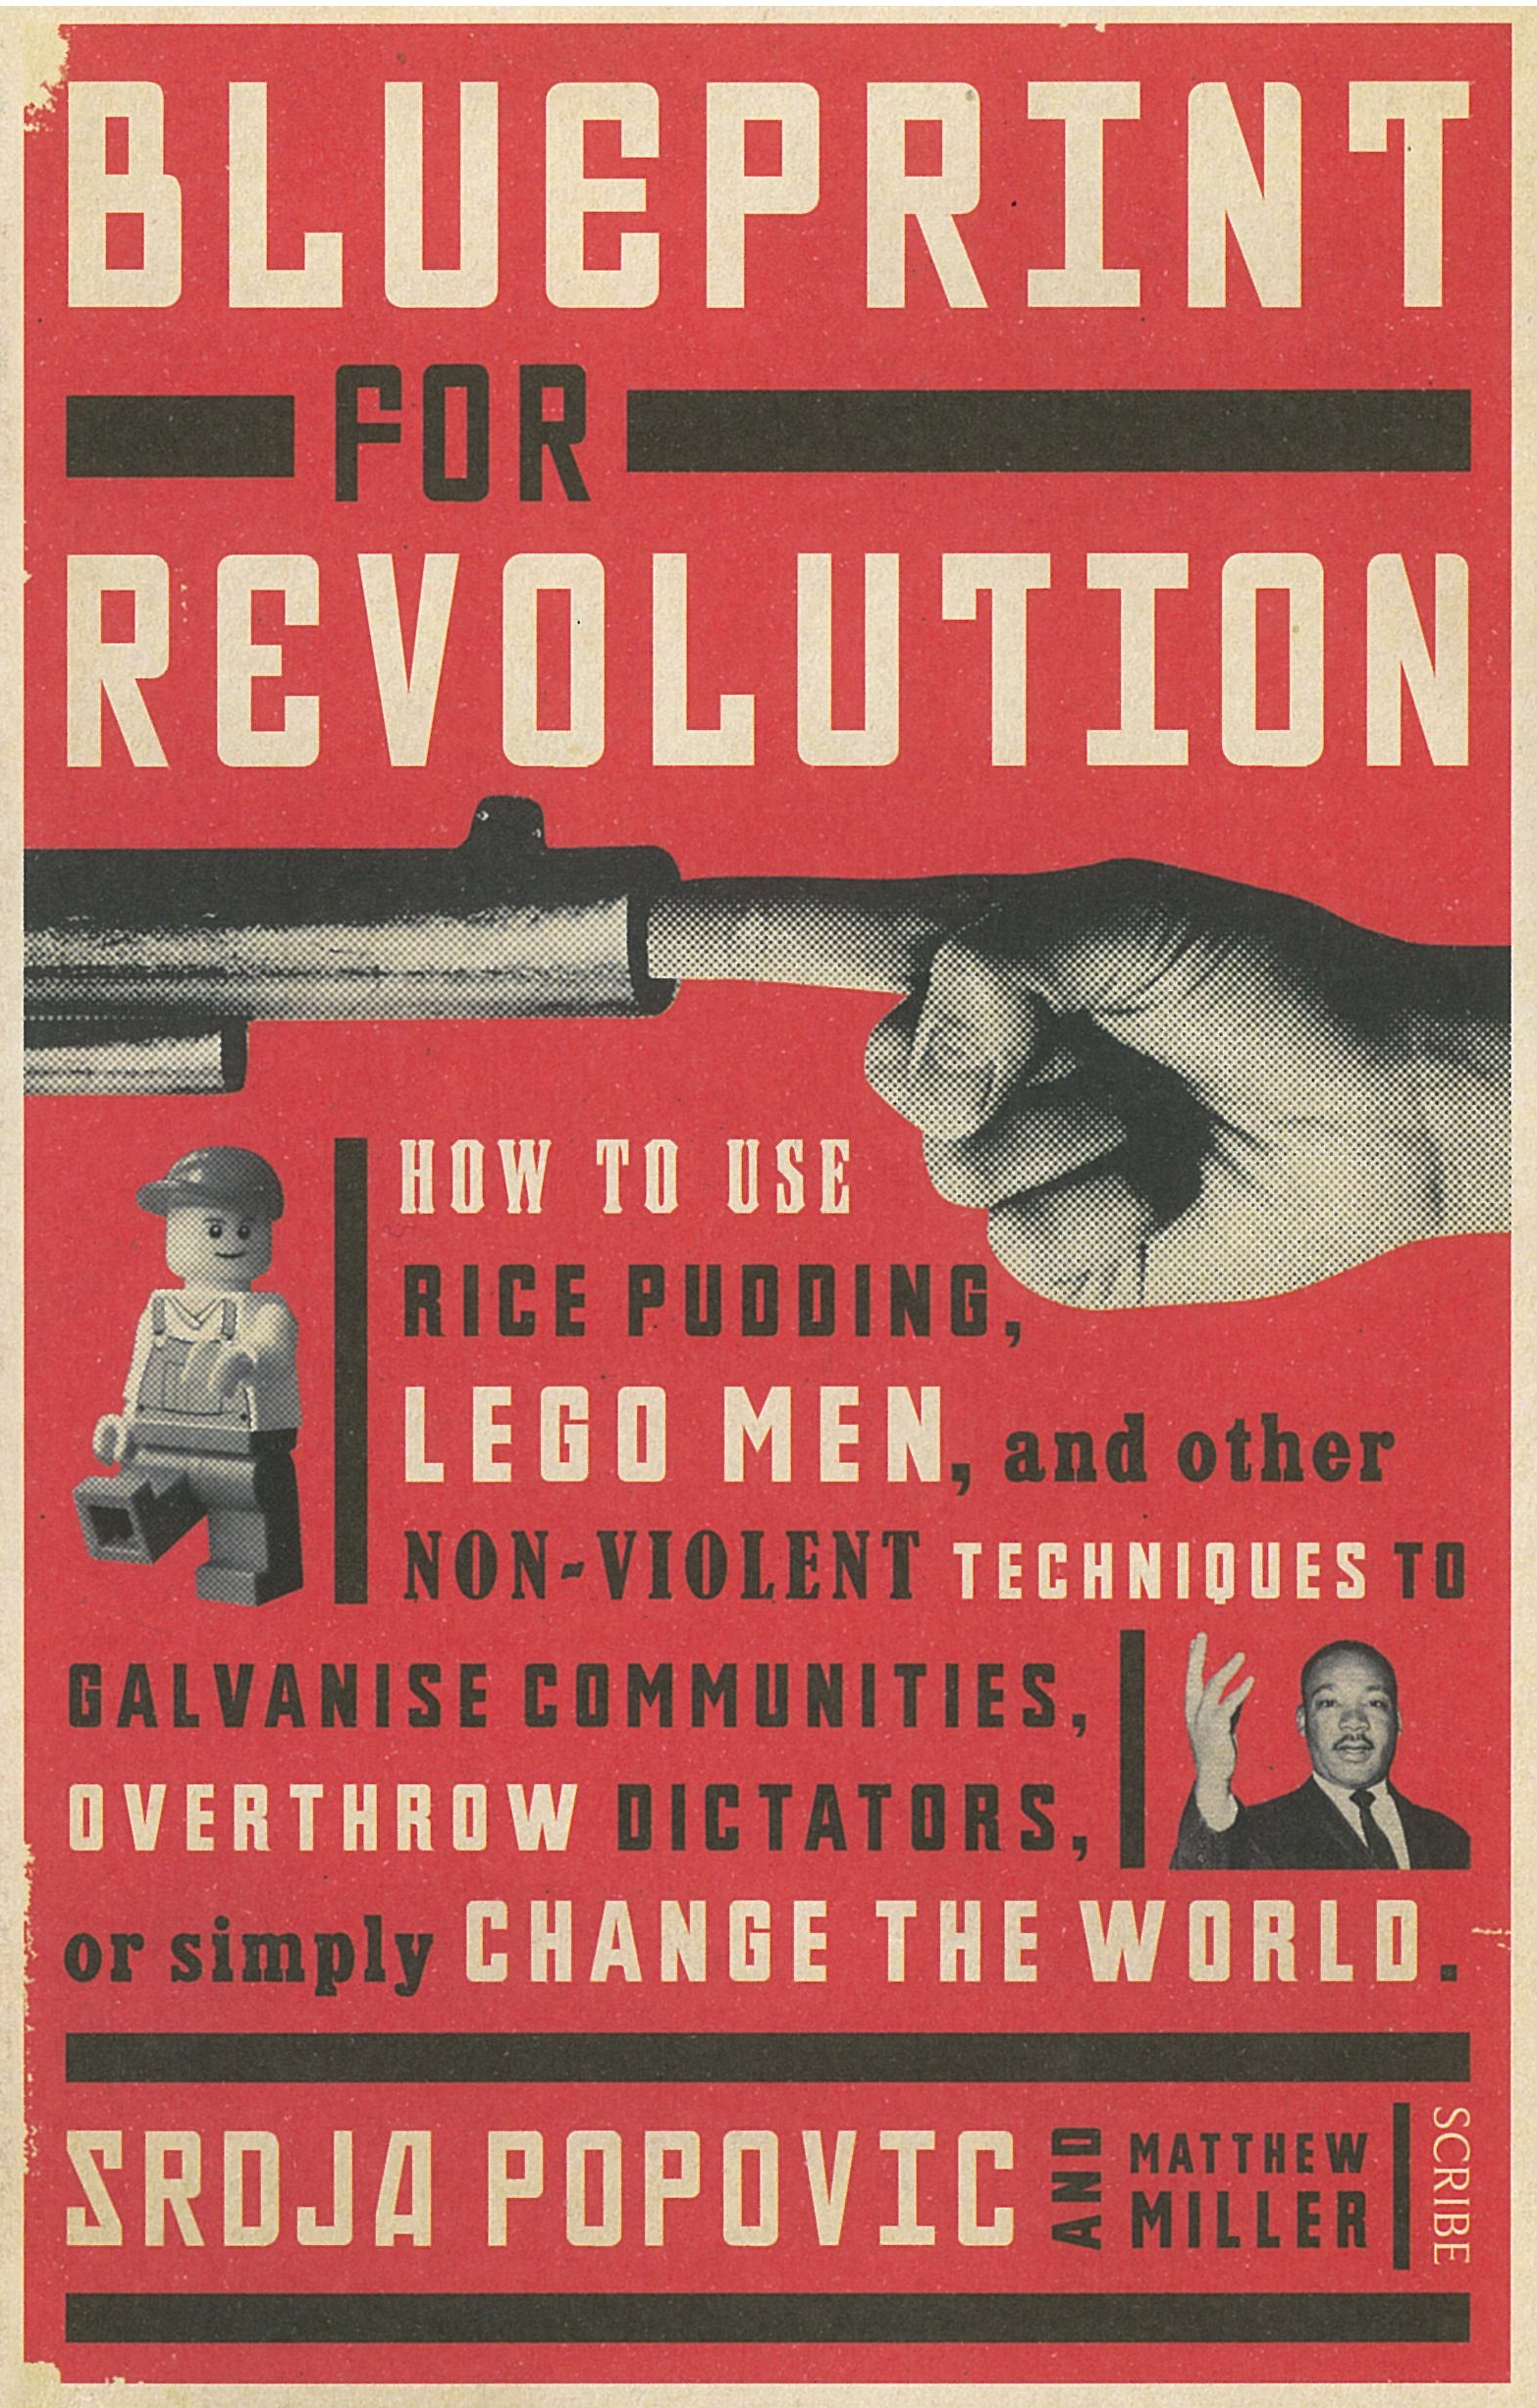 Blueprint for revolution how to use rice pudding lego men and blueprint for revolution how to use rice pudding lego men and other non violent techniques to galvanise communities overthrow dictators malvernweather Choice Image